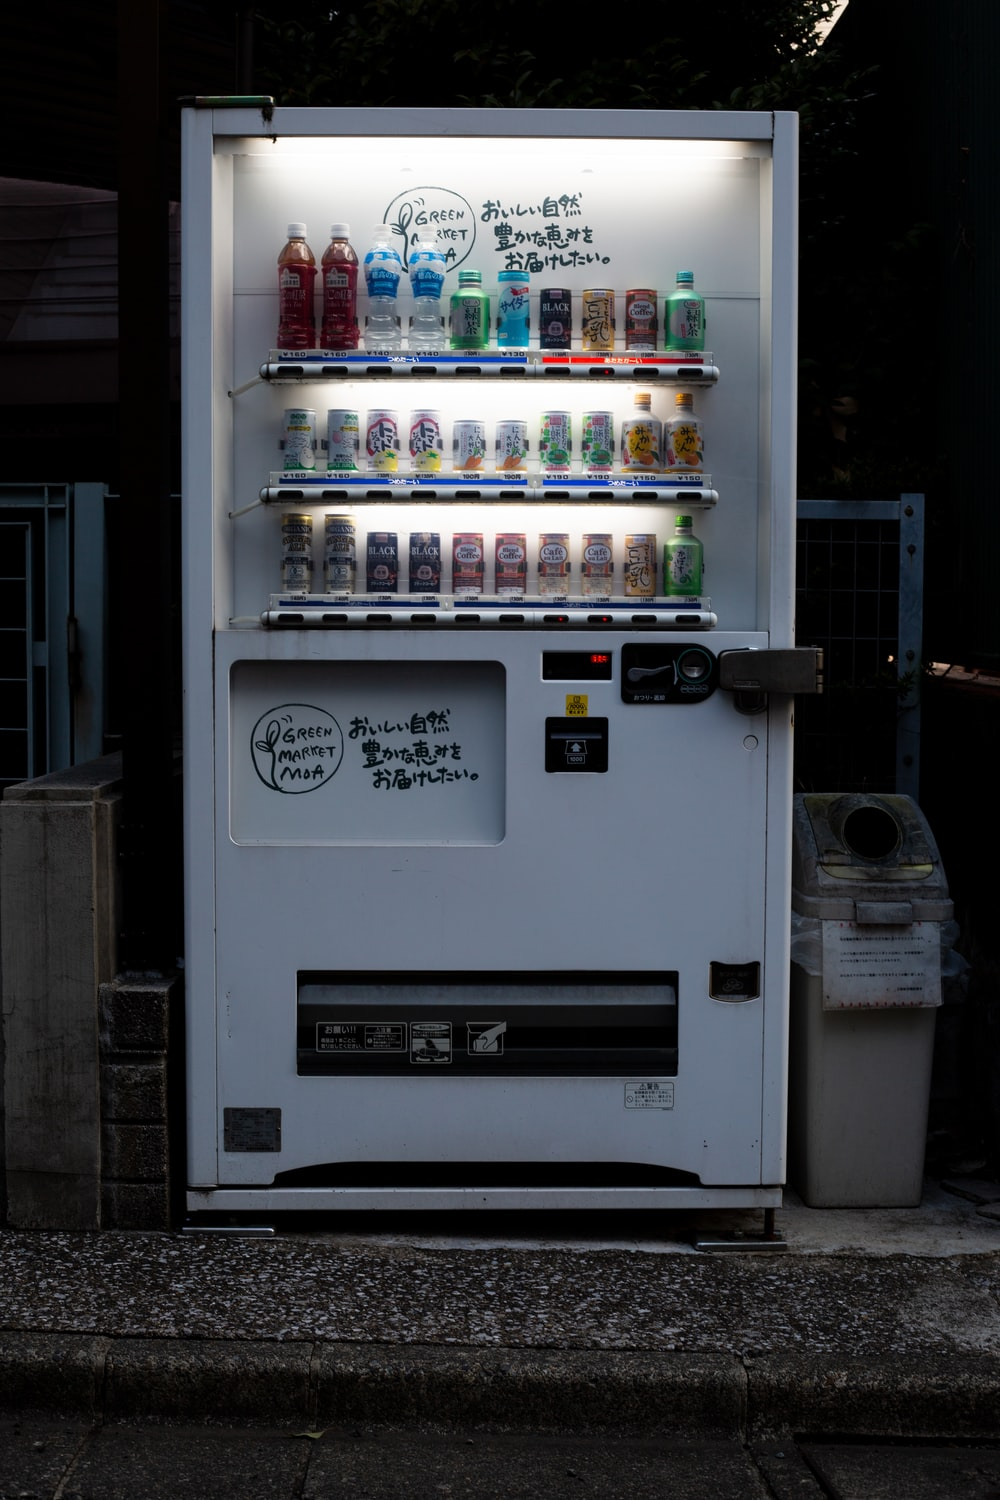 white vending machine with lights turned on